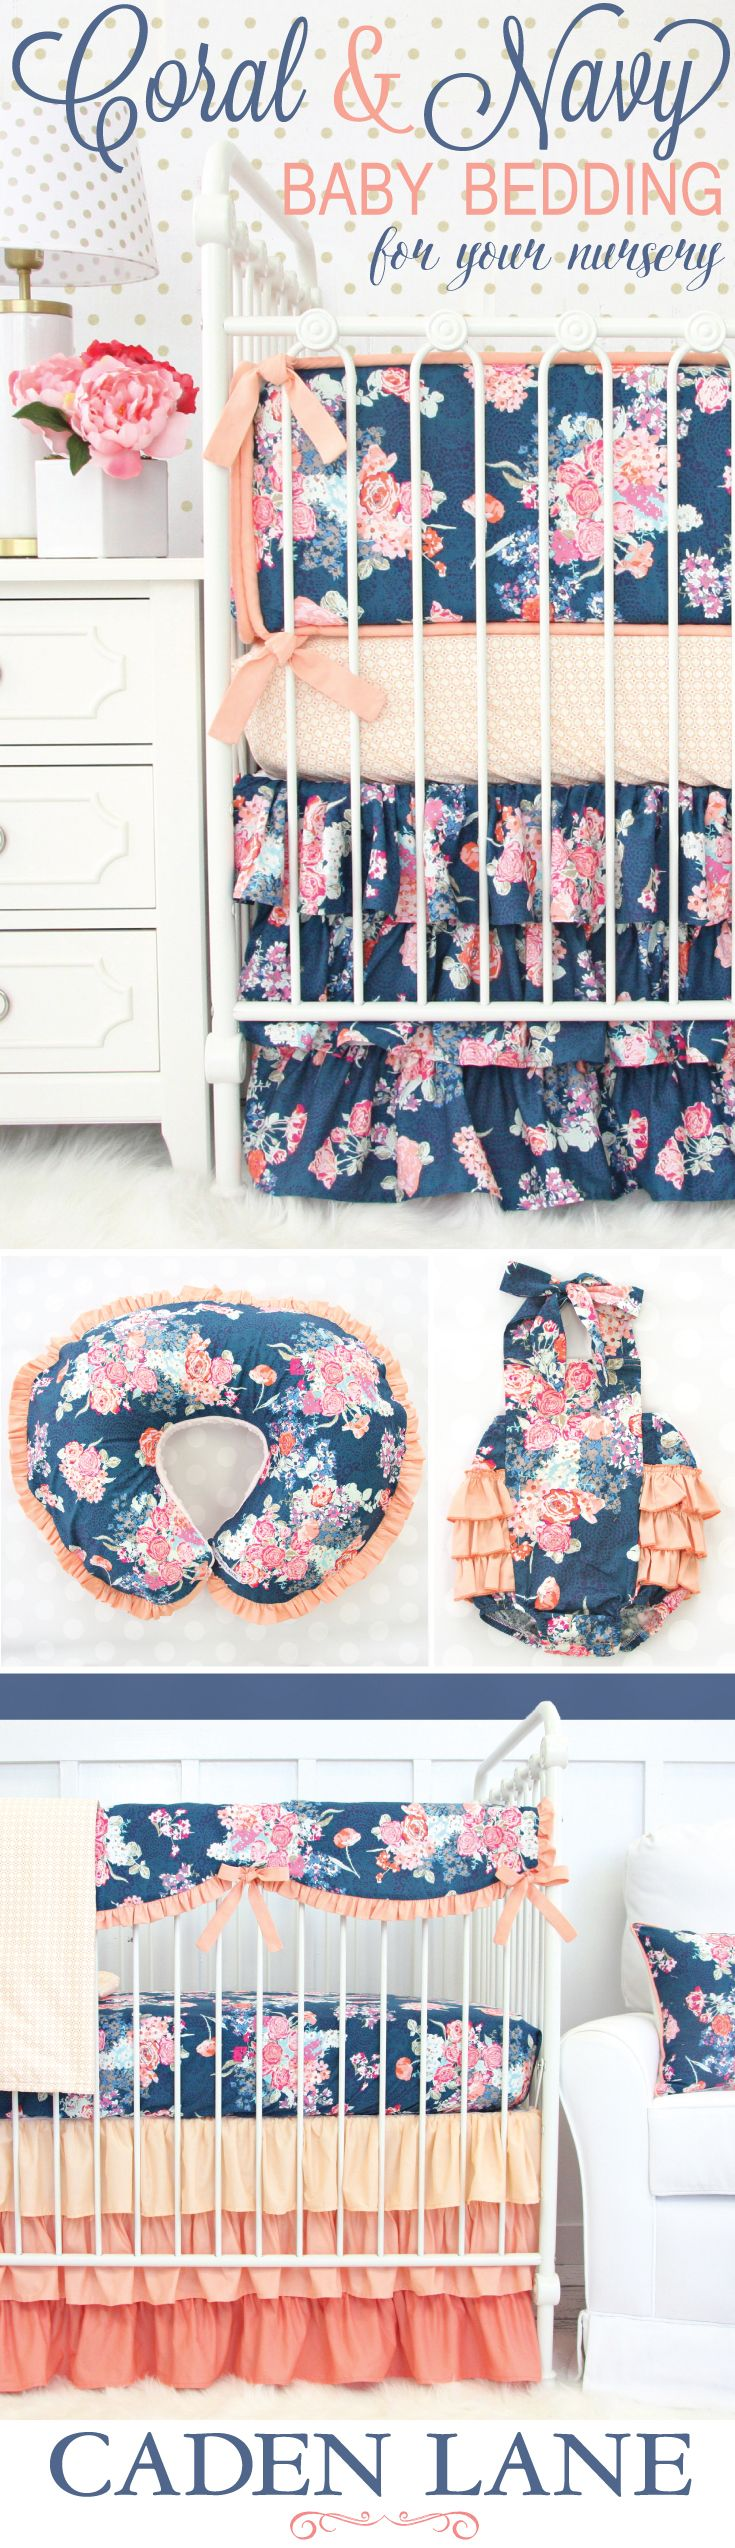 Fall in love with our coral & navy baby bedding and accessories! This nursery trend is completely gorgeous.